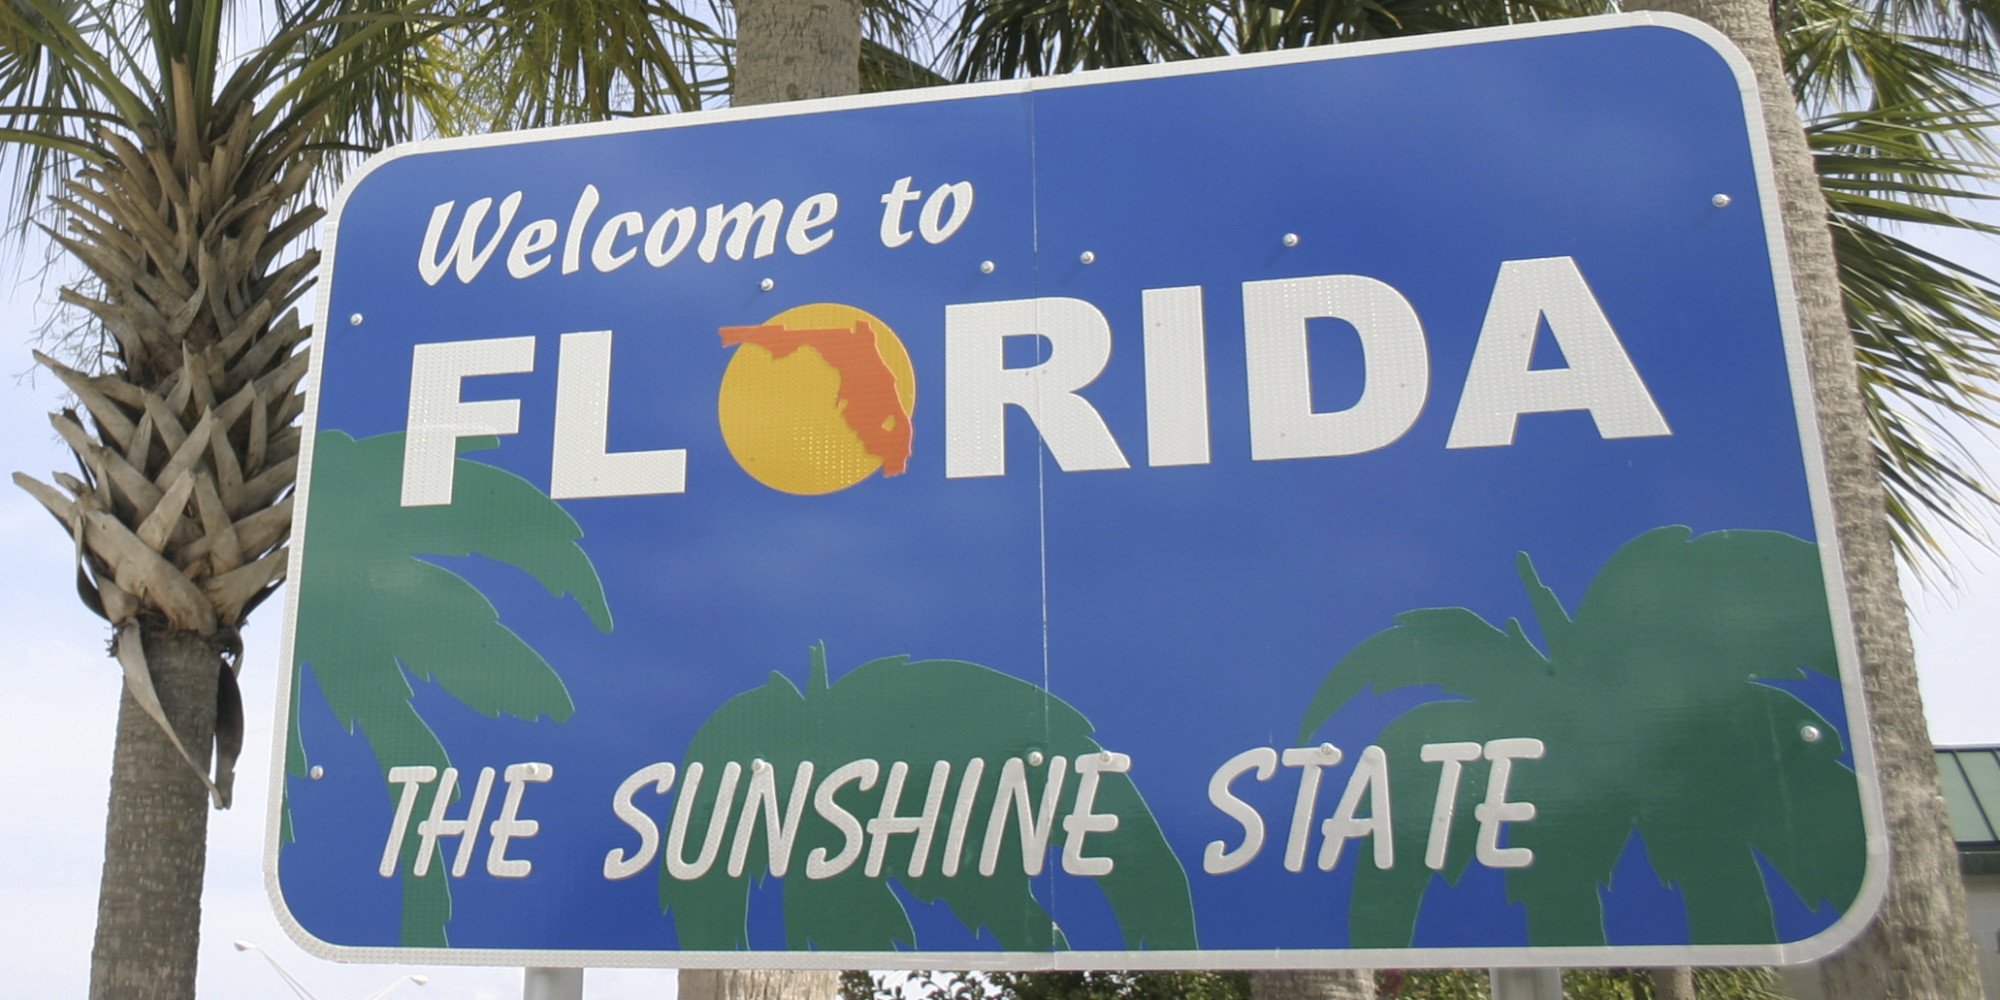 Florida May Soon Pass New York As 3rd Most Populous State